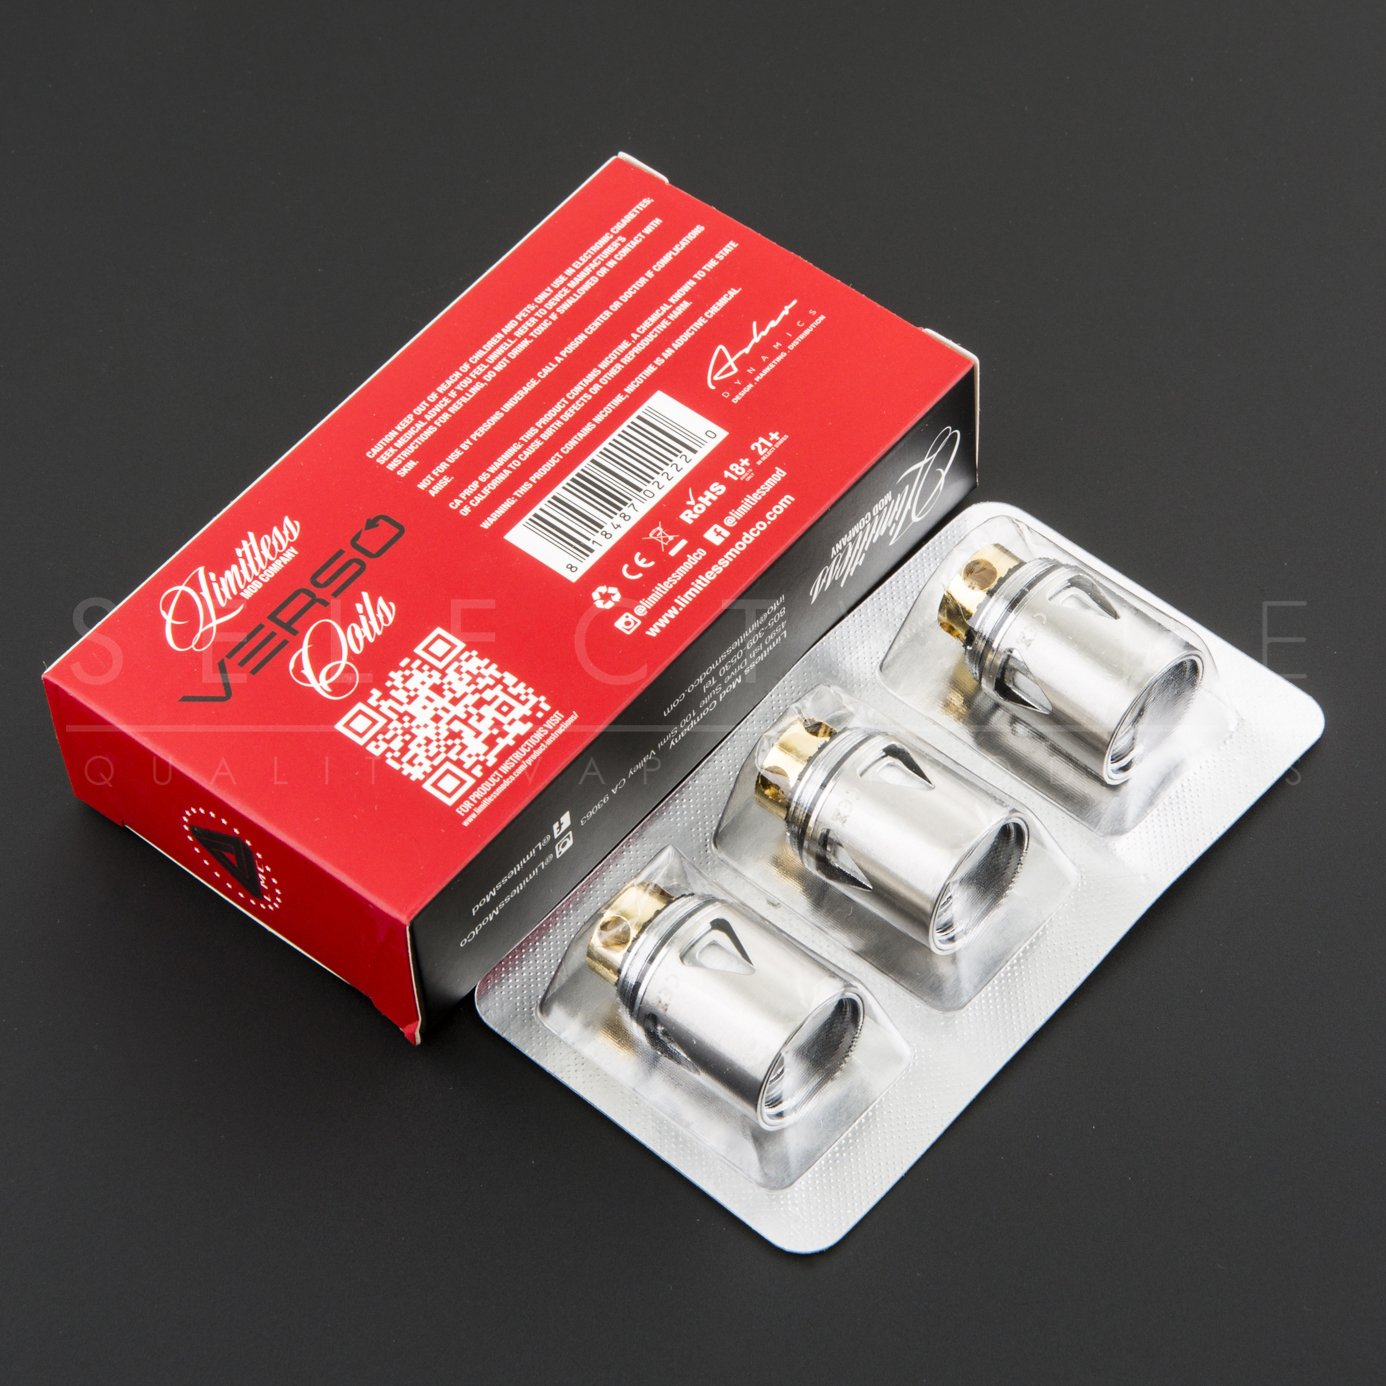 Limitless - Verso Coils 0.15ohm